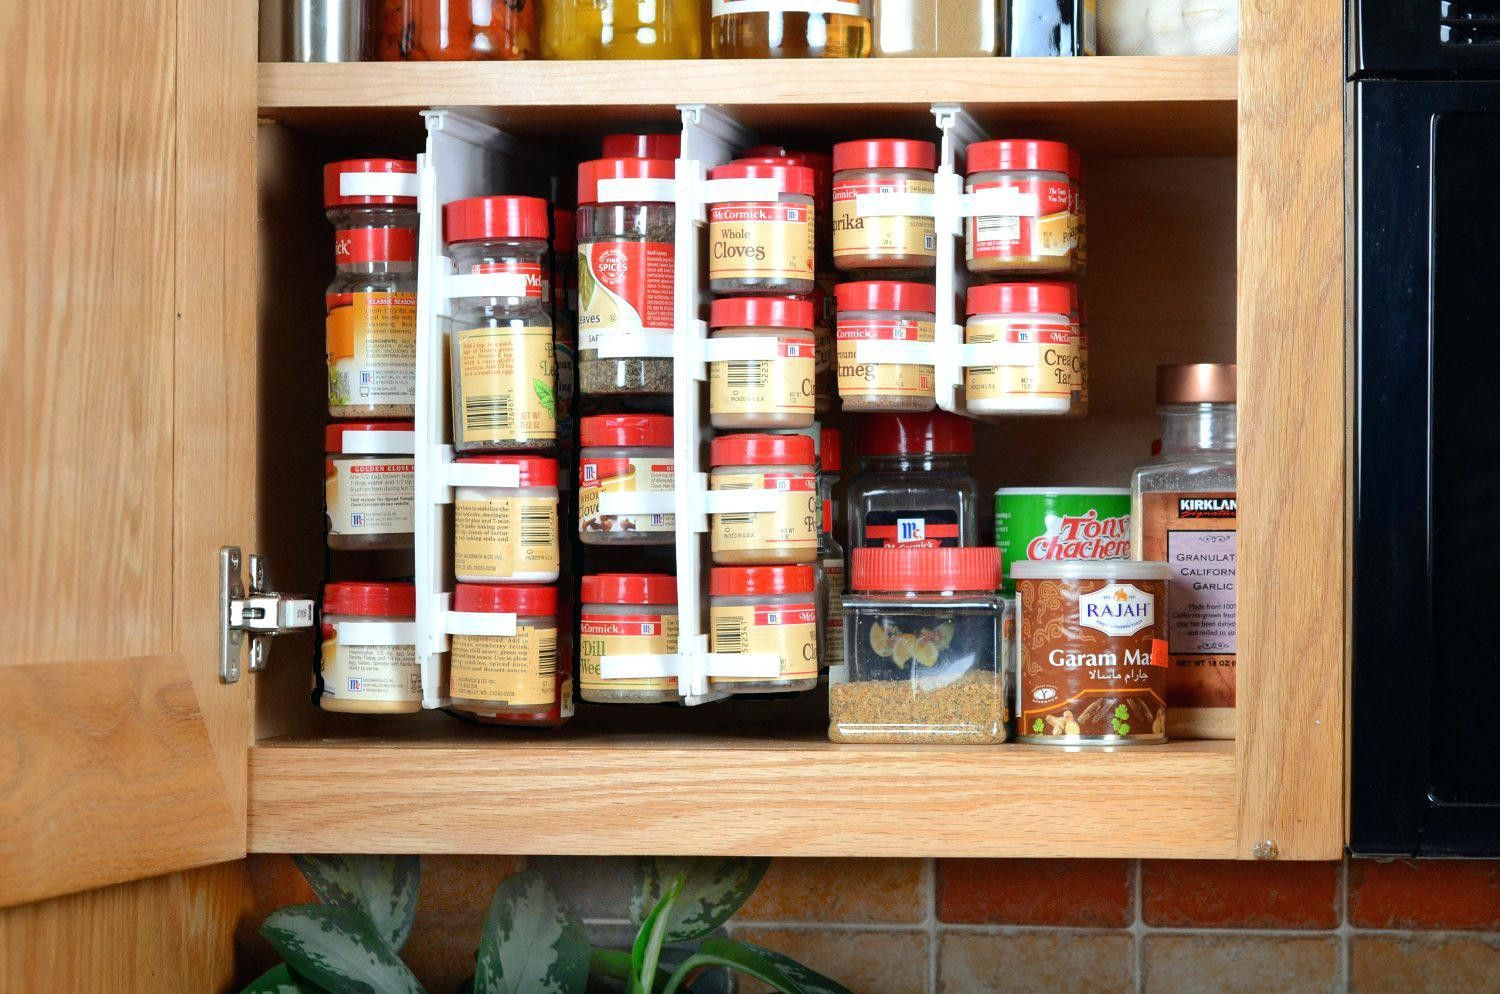 70 Slide Out Spice Racks For Kitchen Cabinets Kitchen Cabinets Update Ideas On A Spice Rack Kitchen Cabinet Cabinet Organization Diy Spice Storage Solutions